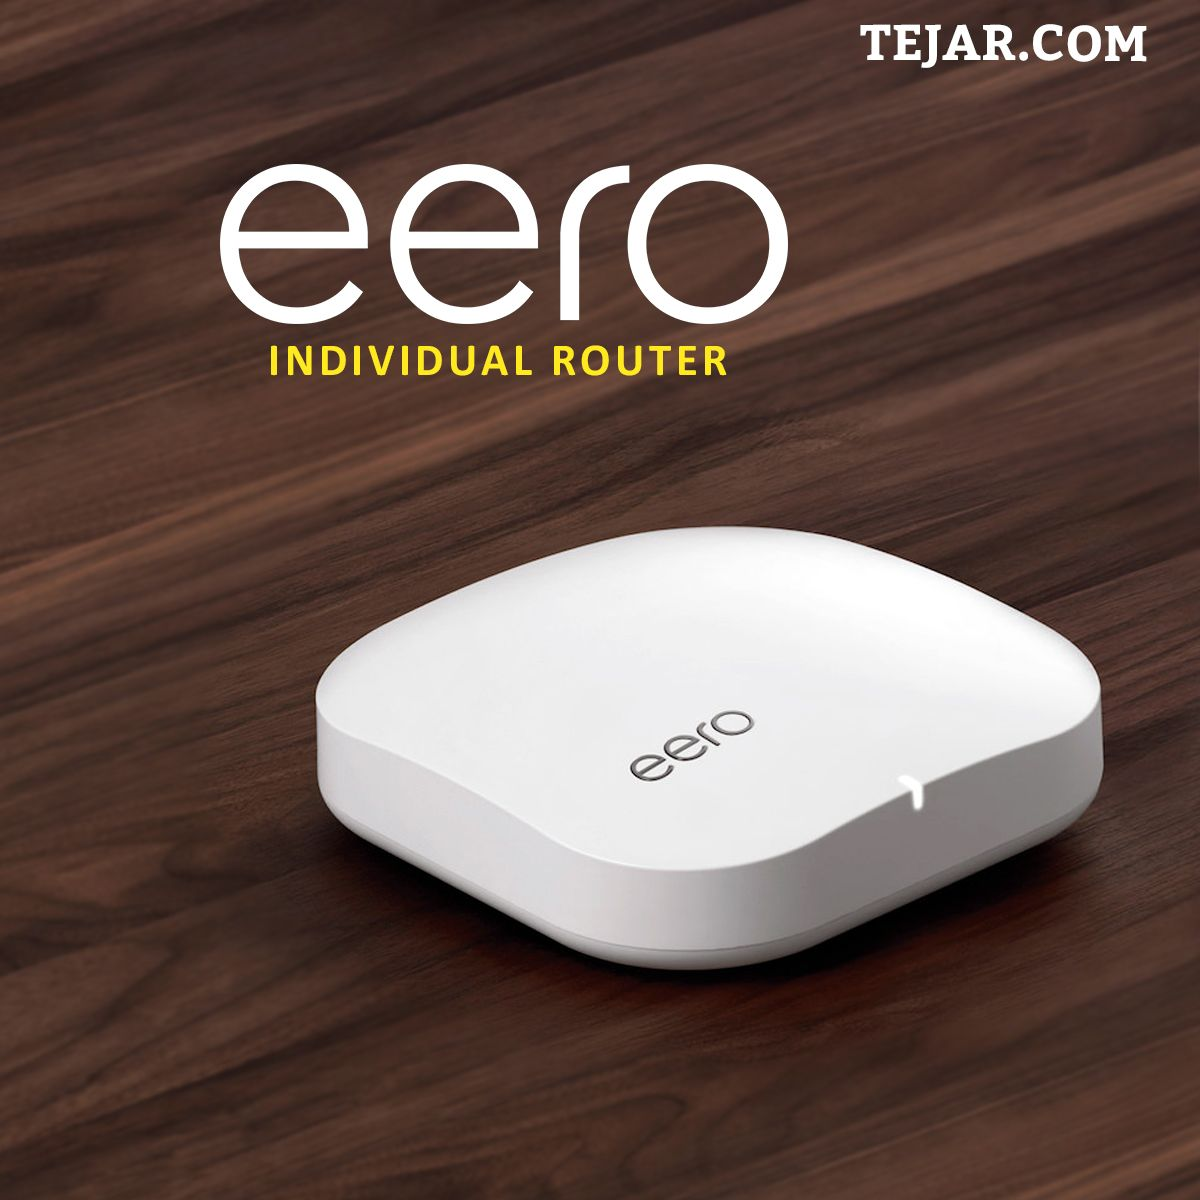 With Two Ethernet Ports Eero Is Perfect For Media Rooms Or Anywhere You Have Ethernet Wiring Tejar Eero Uae Dubai Ethernet Wiring Router Individuality